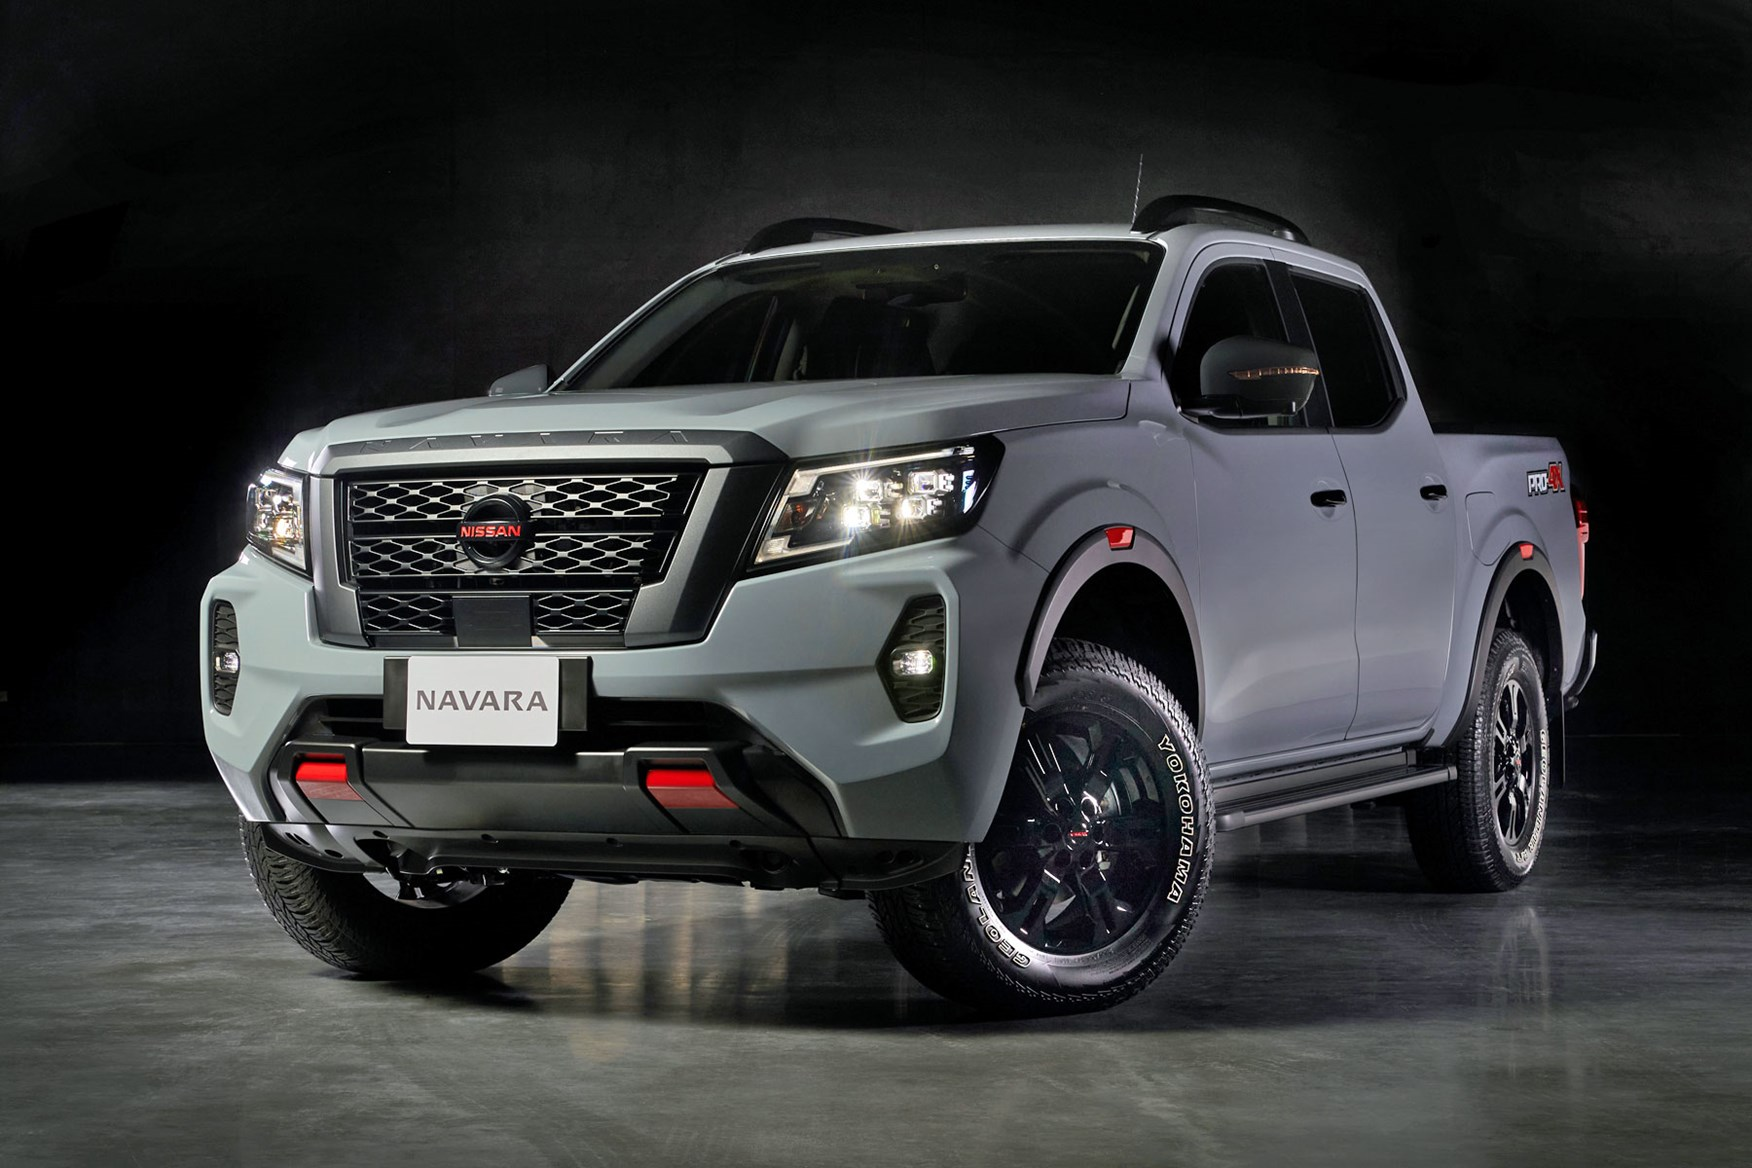 2021 Nissan Navara facelift front - not coming to the UK and Europe